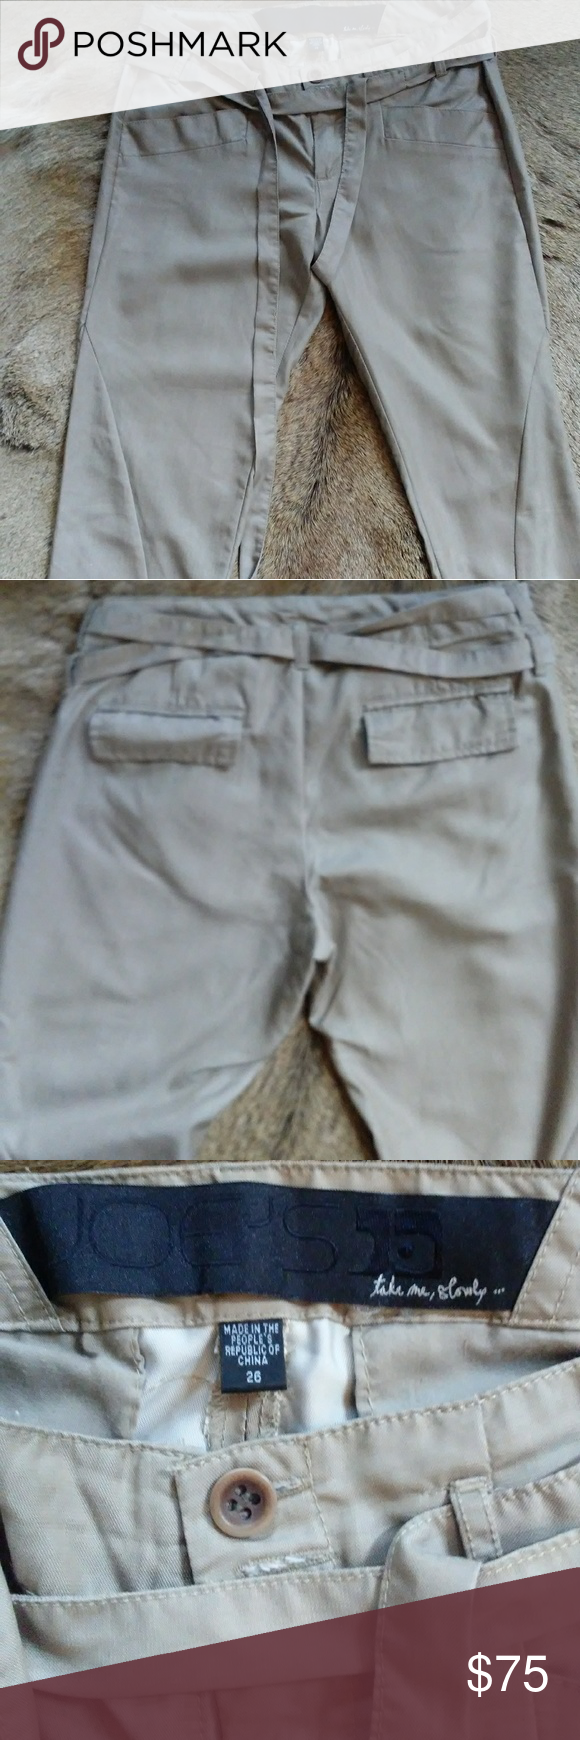 JOE'S Cropped Pant Lovely Joes Cropped pants Size 26 Condition - new without tags JOE'S Pants Ankle & Cropped